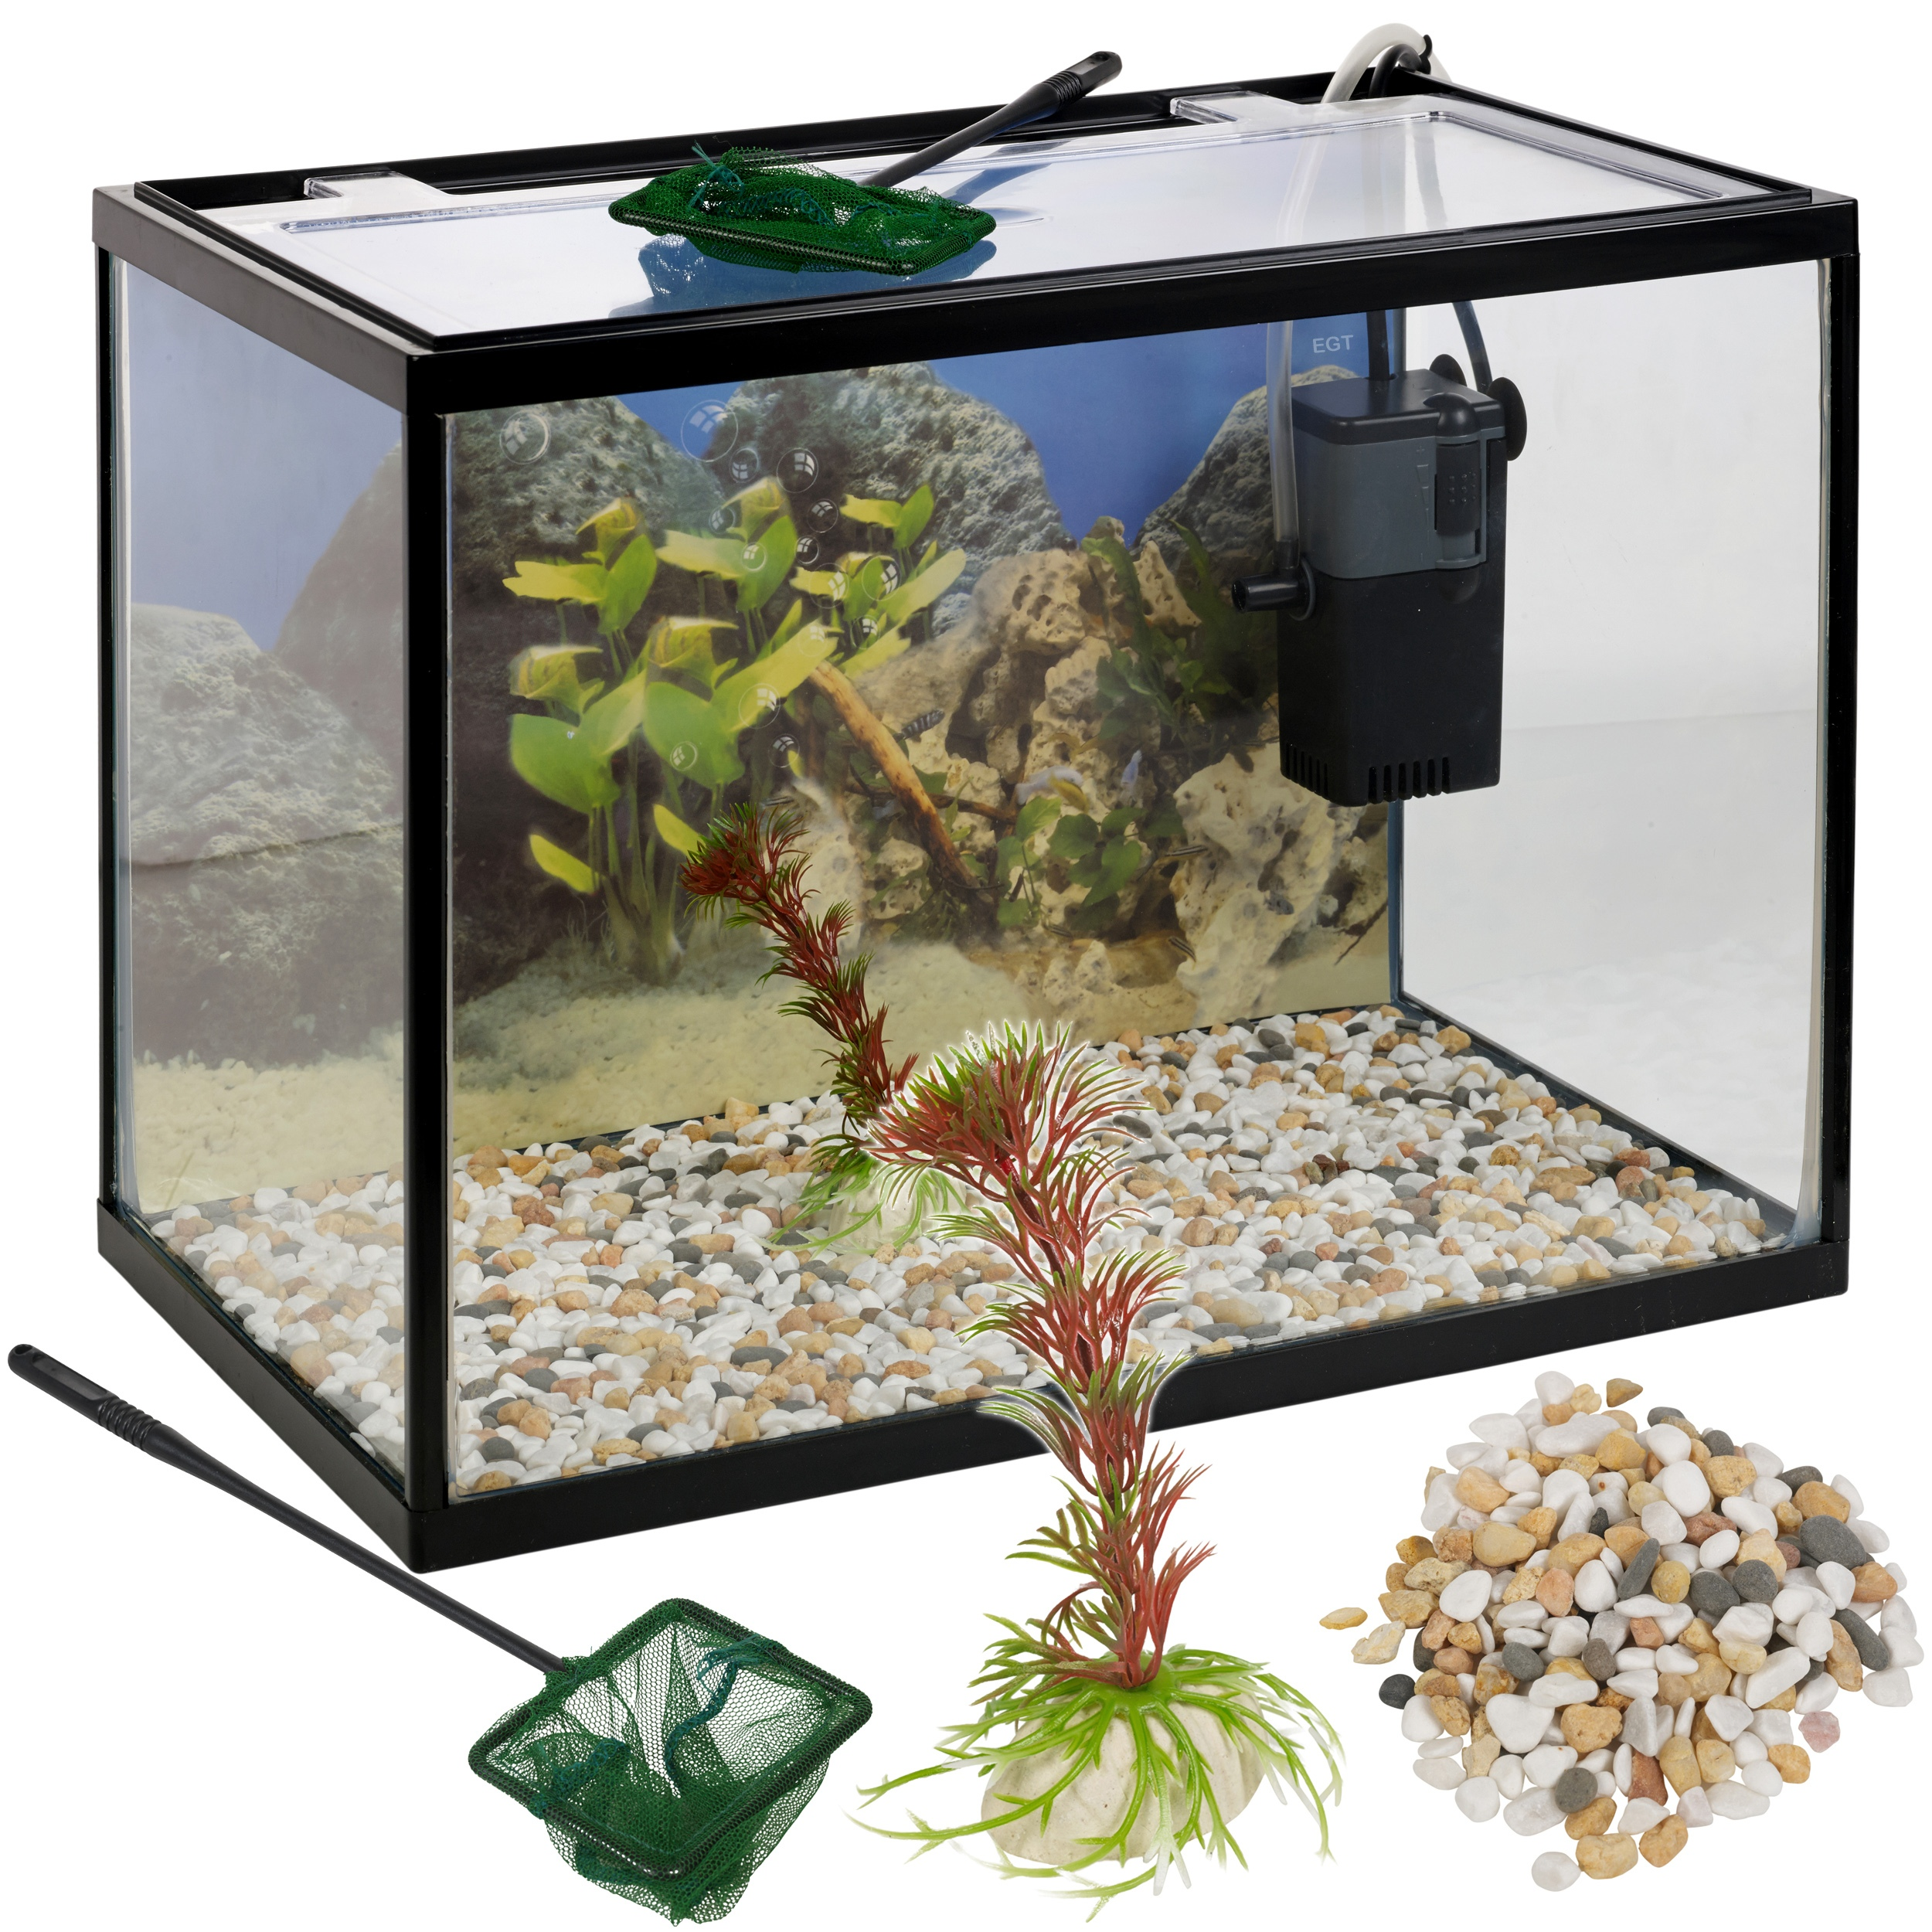 Aquarium fish tank starter kit - Item Specifics